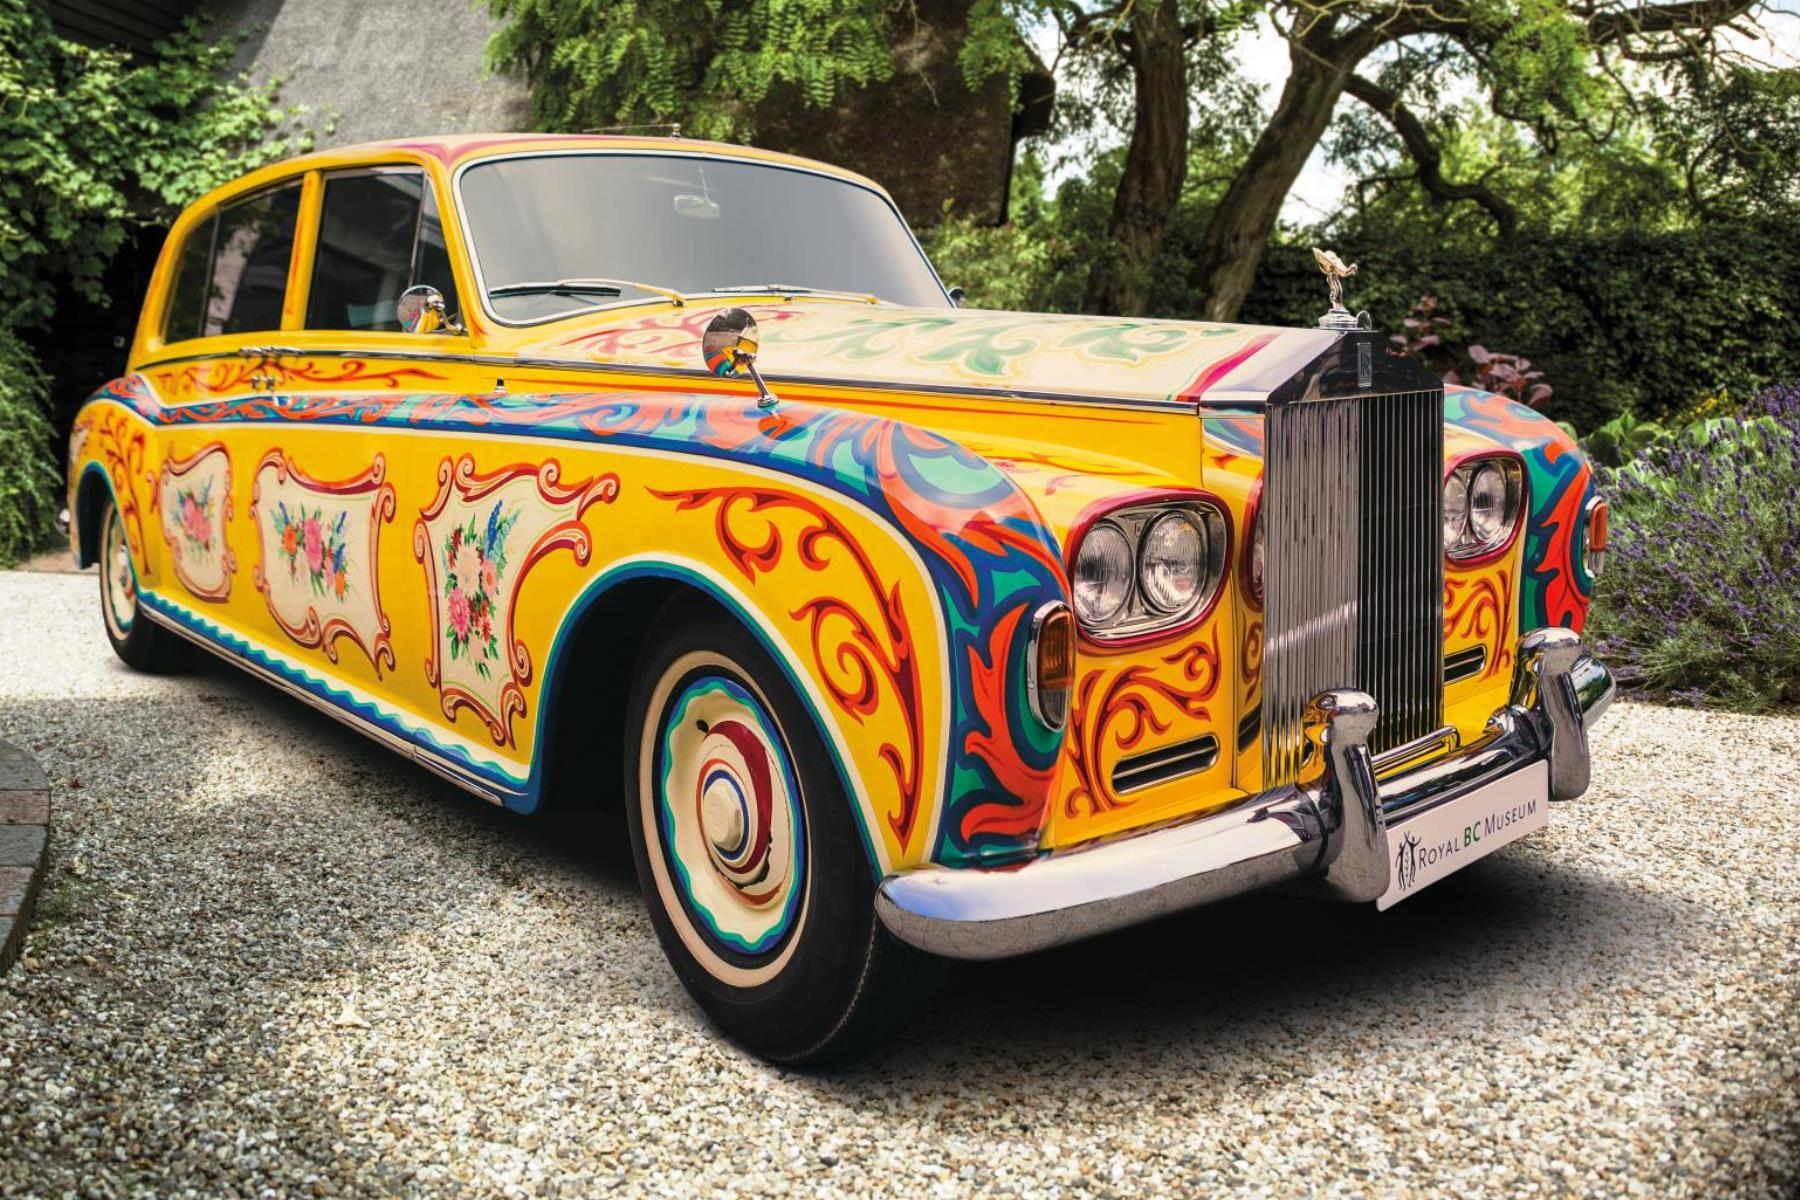 Lennon's 'psychedelic' Rolls-Royce is coming home